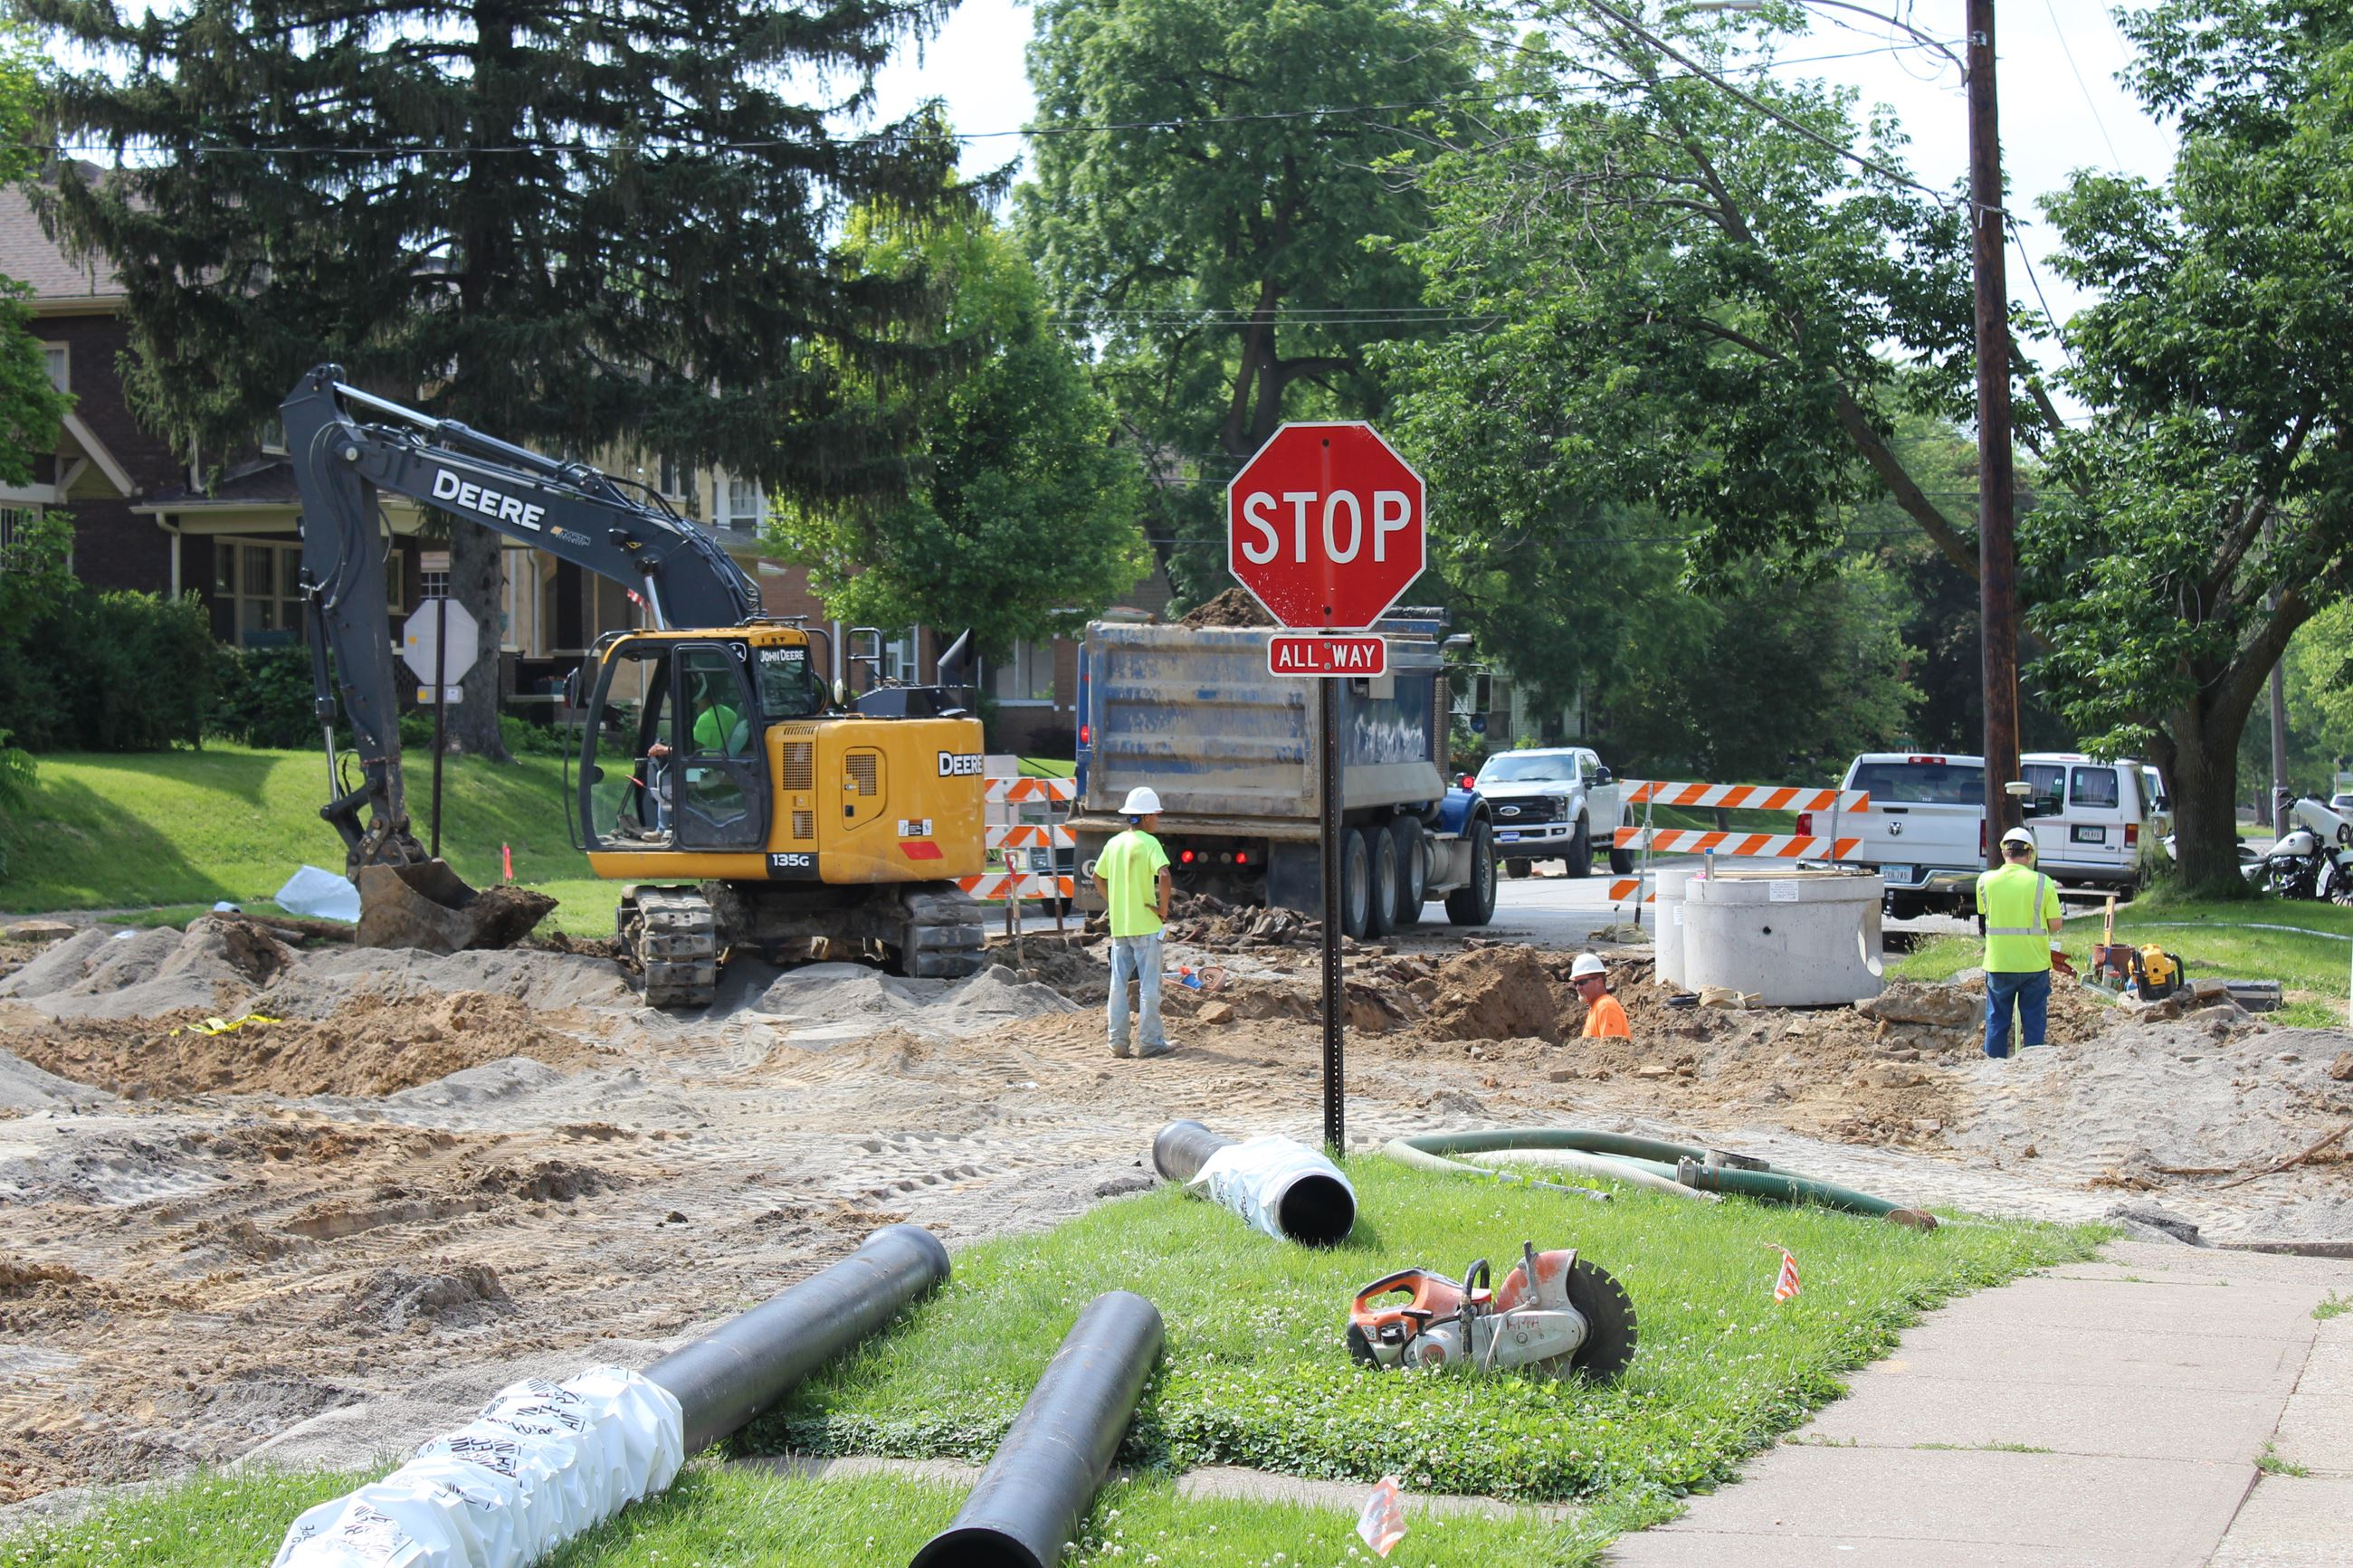 Work continues on Phase 4B of West Hill Sewer Separation June 6, 2019 (JPG)